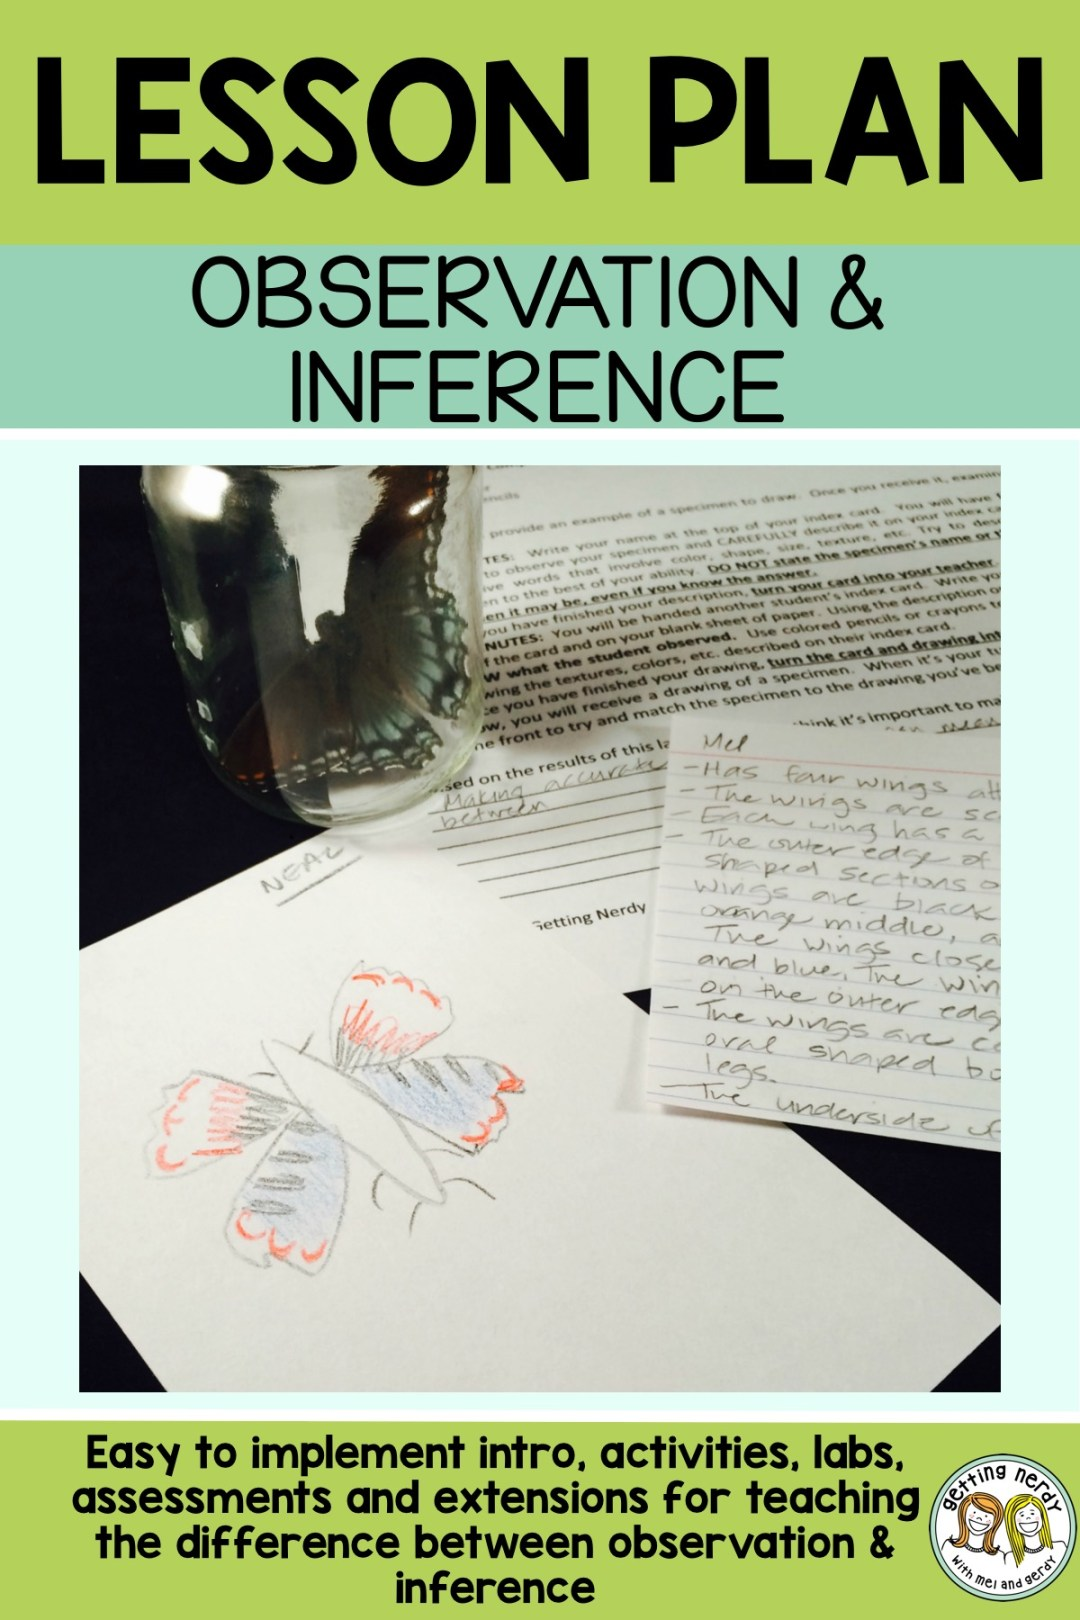 This is a great lesson for introducing the scientific method and teaching the difference between observation and inference #gettingnerdyscience #scientificmethod